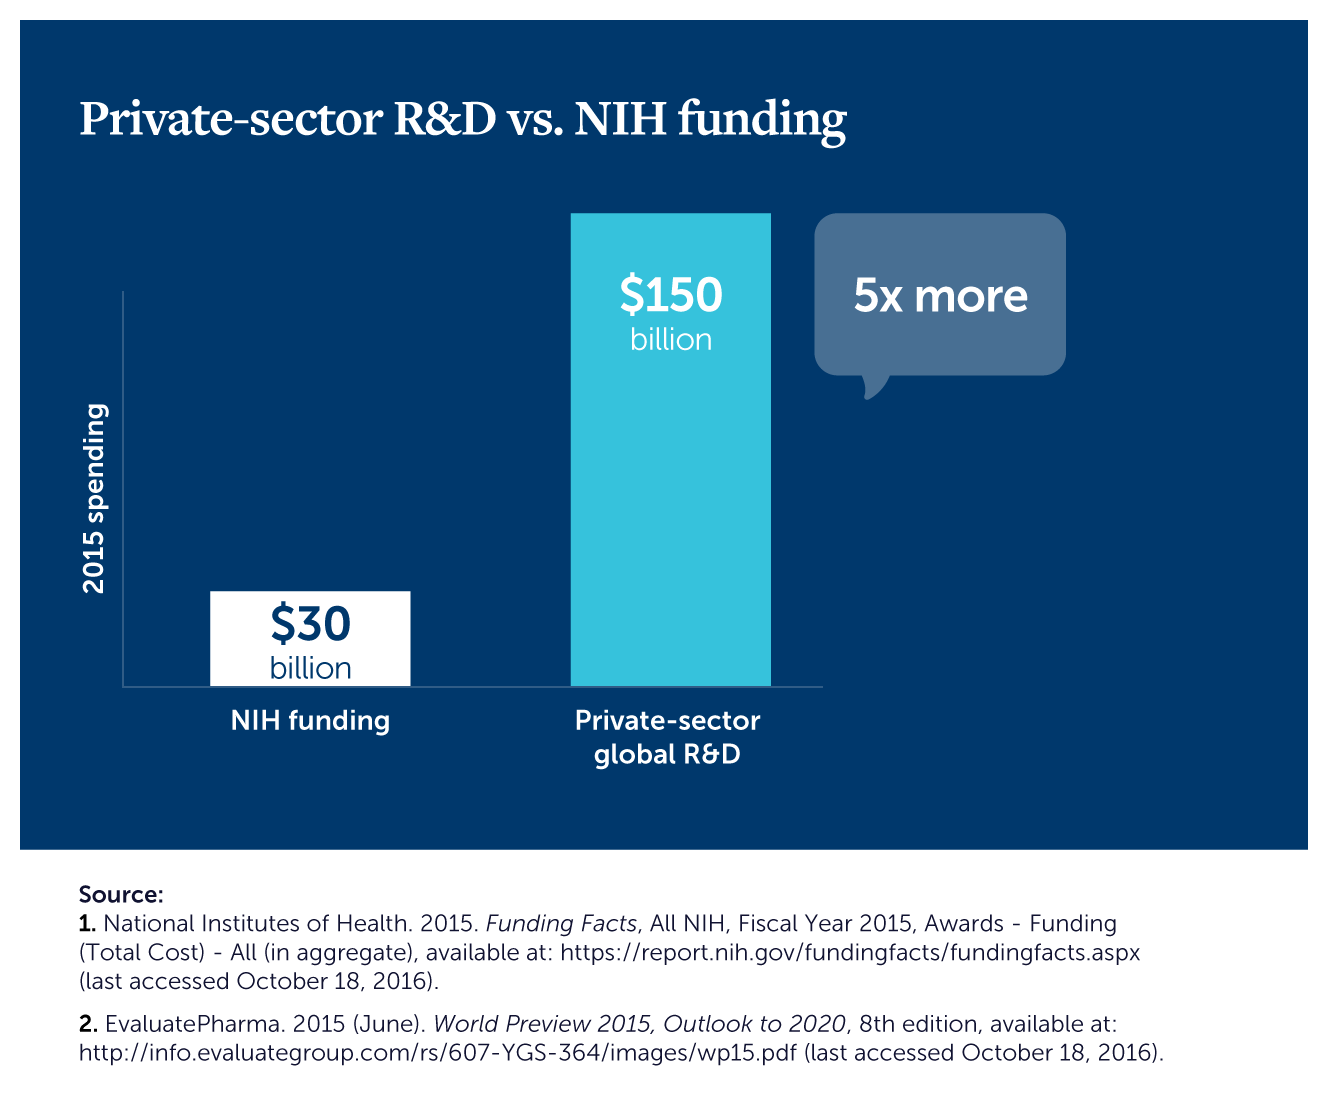 Private Investment Dwarfs NIH Funding